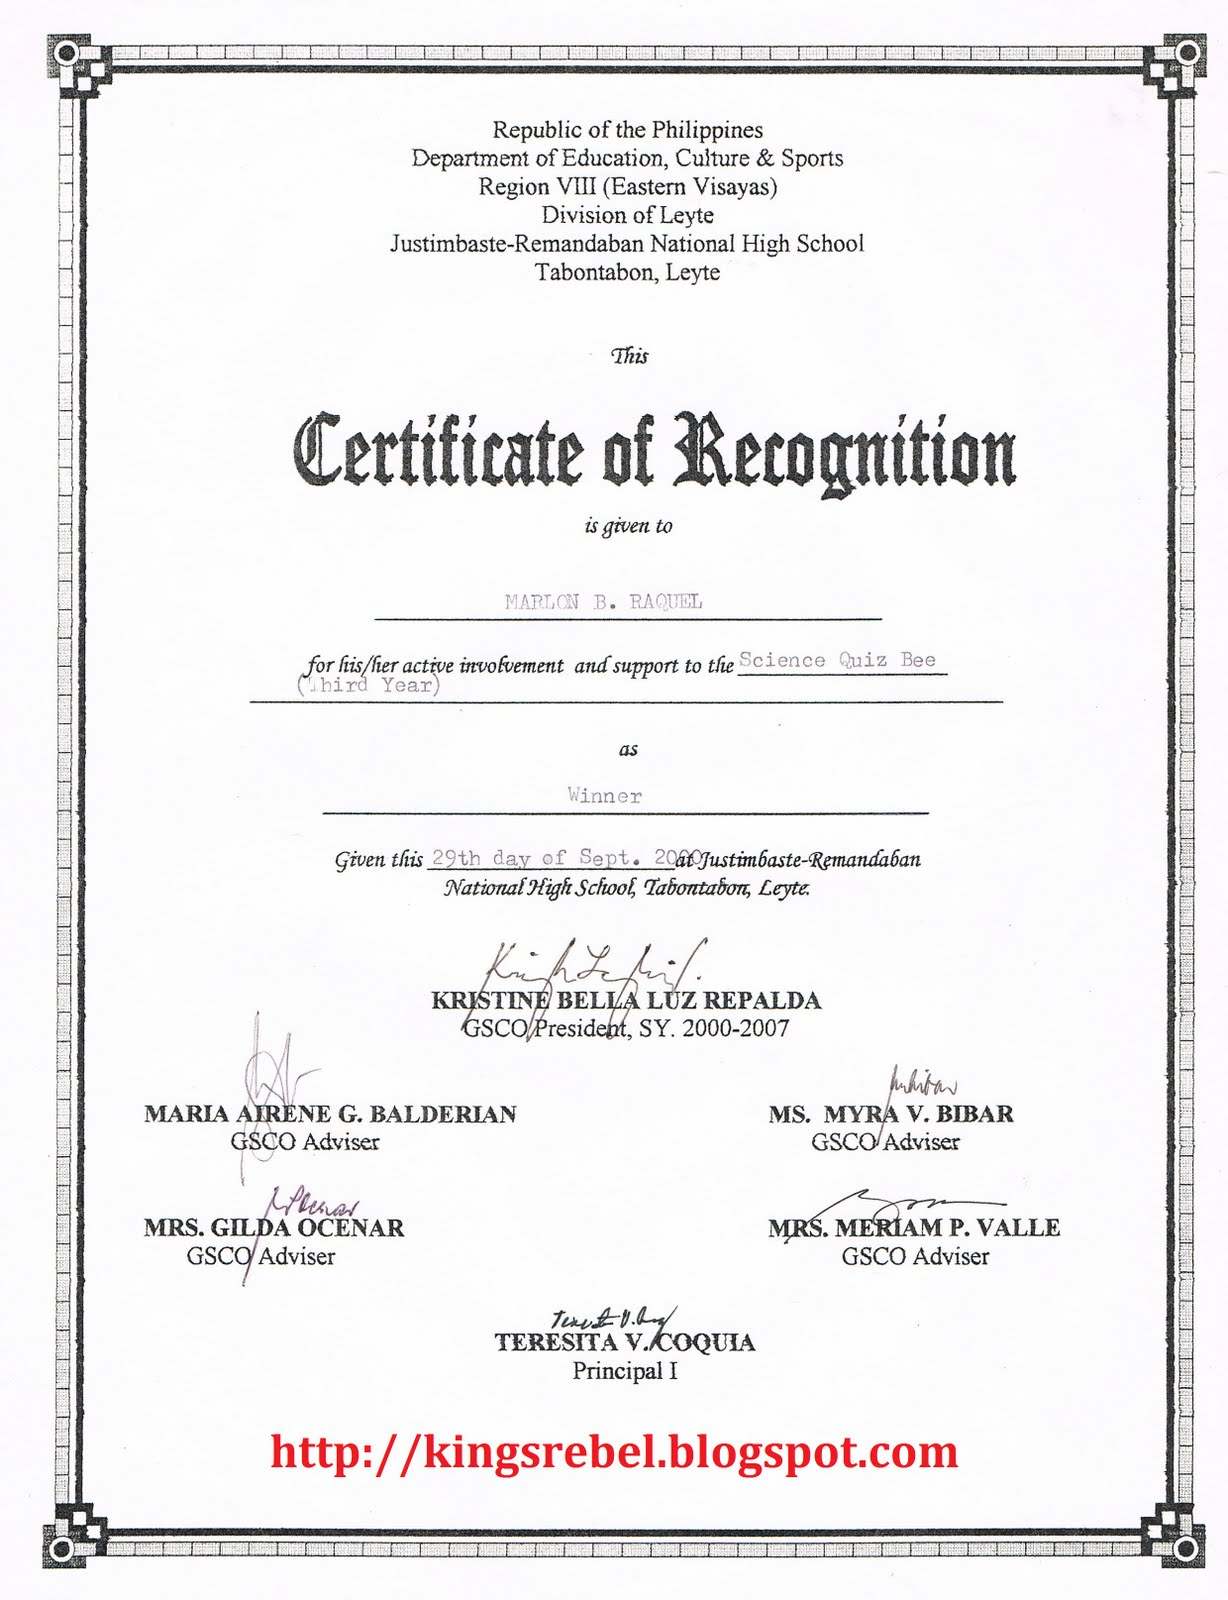 examples of certificates of recognition – Certificate of Recognition Samples